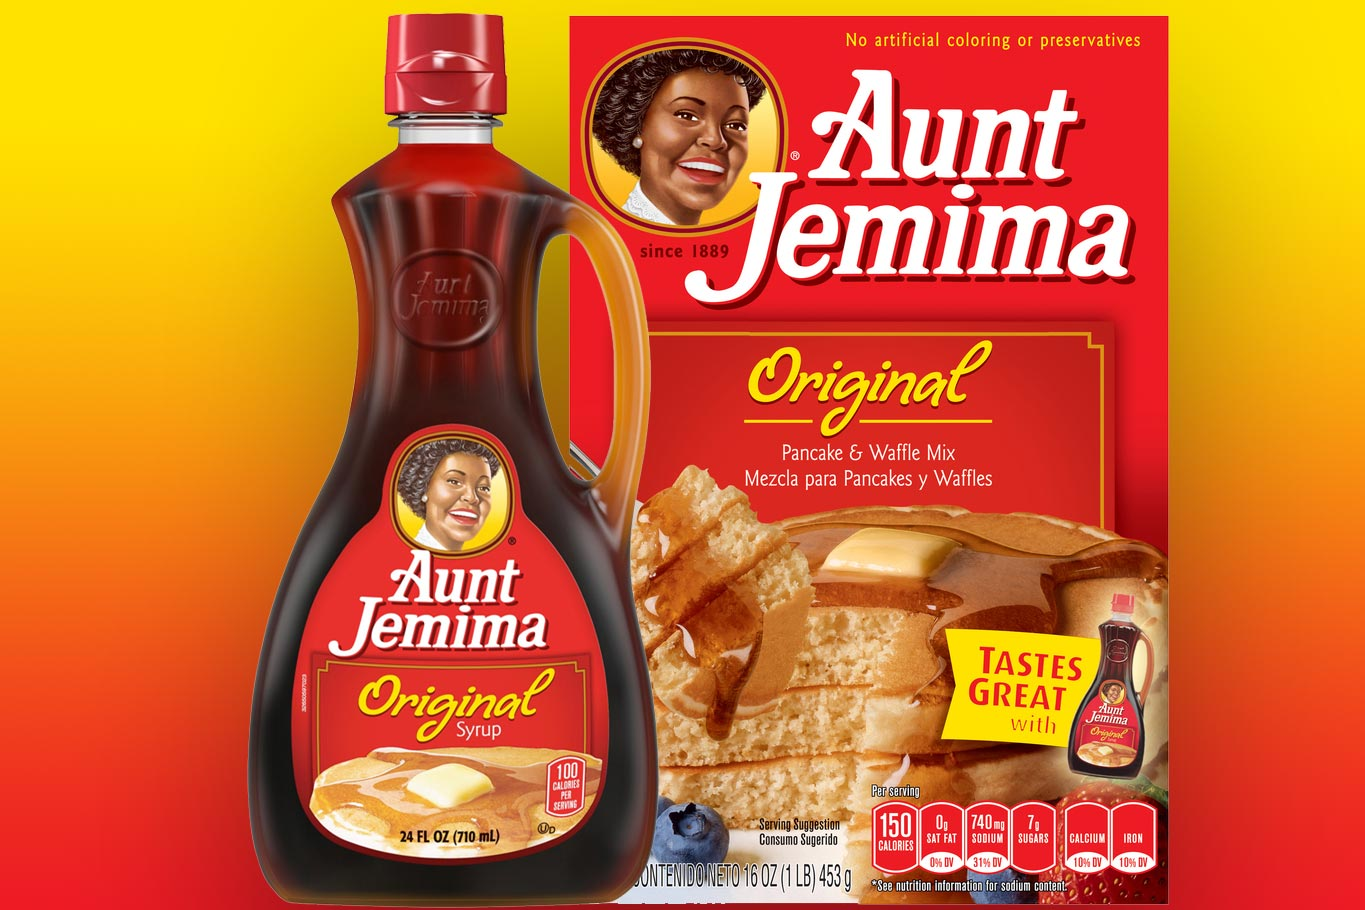 Aunt Jemima to retire image and name and Facebook allows opt-out on political ads